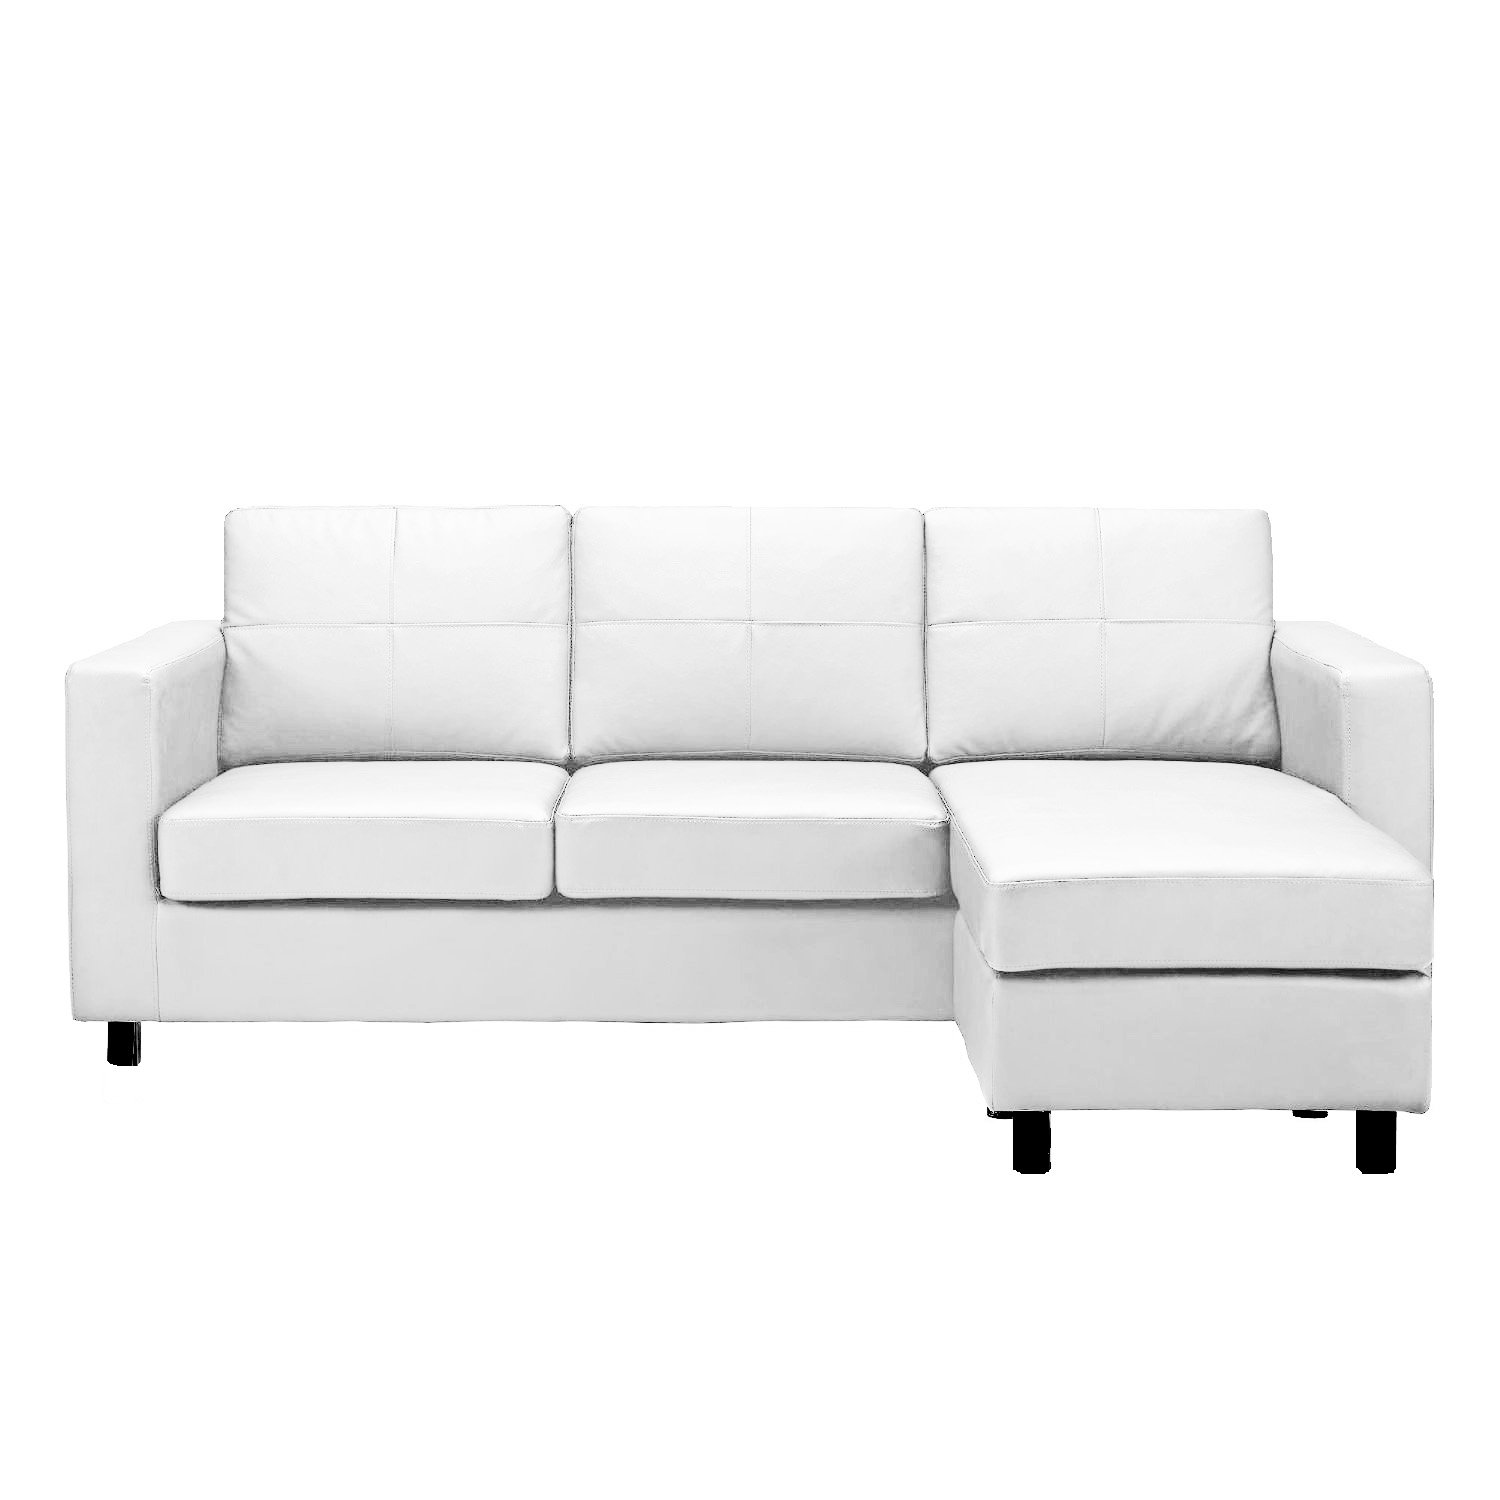 Best Sofa Bed 2017 9 Honest Reviews RelaxingSofa